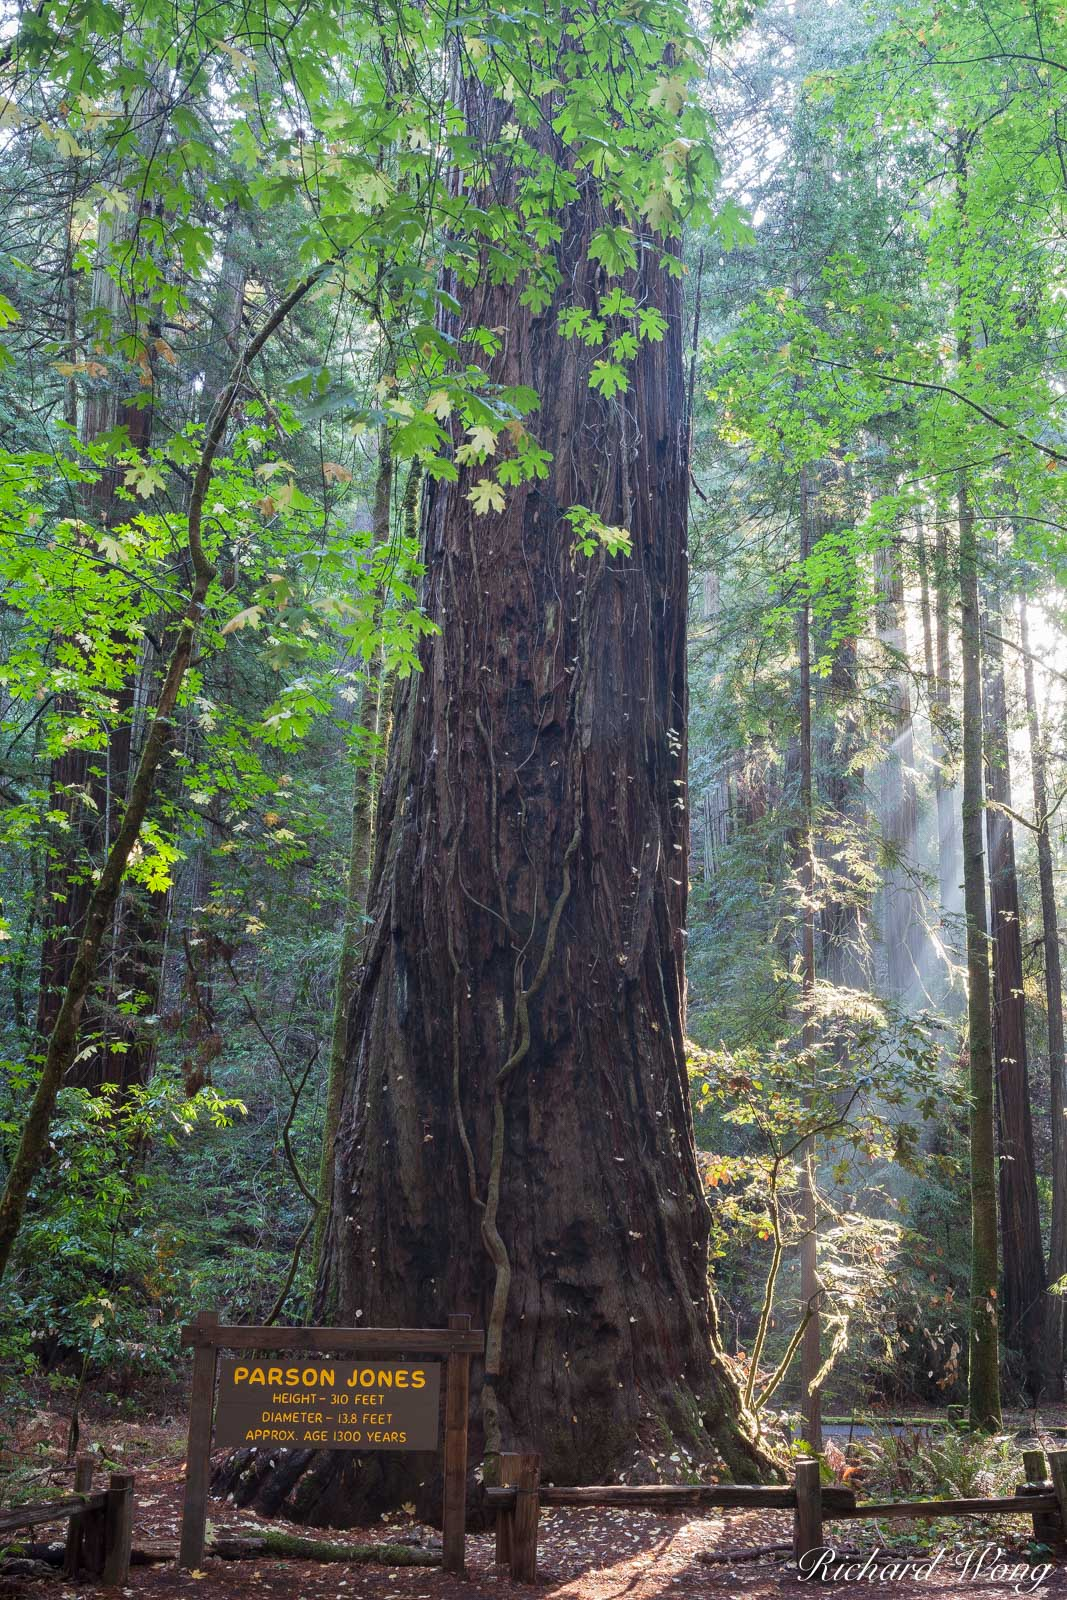 Parson Jones Tree, Coast Redwood, Armstrong Redwoods State Natural Reserve, California, Sonoma County, Guerneville, photo, photo